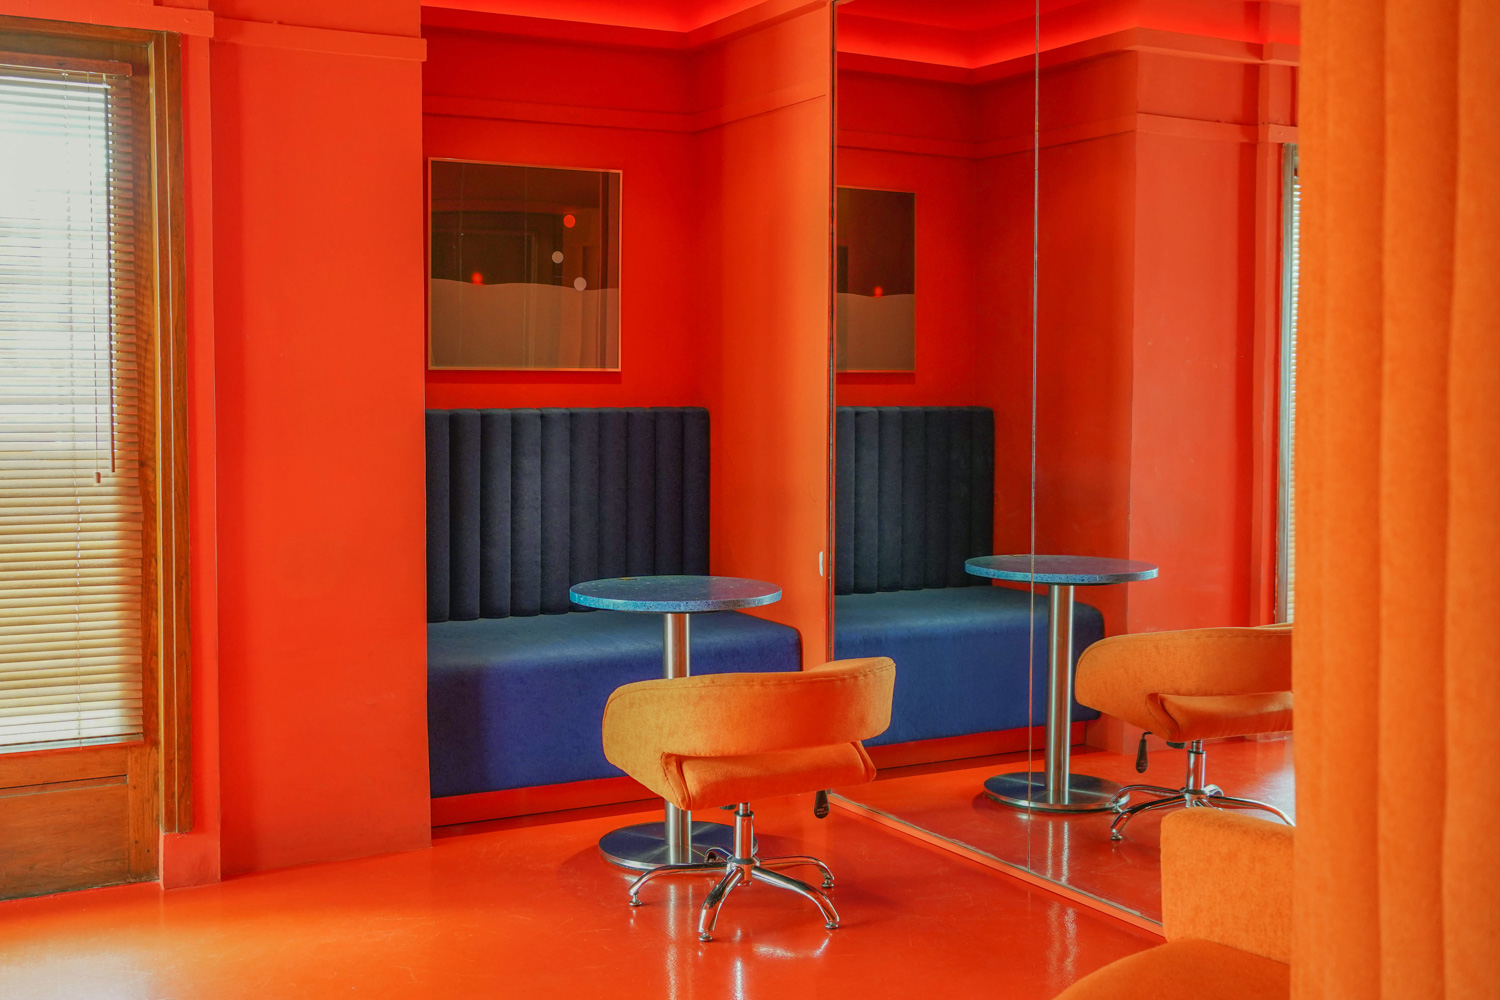 Banquette seating offers a place to pore over purchases and sip a cocktail at Peels Records' sound bar